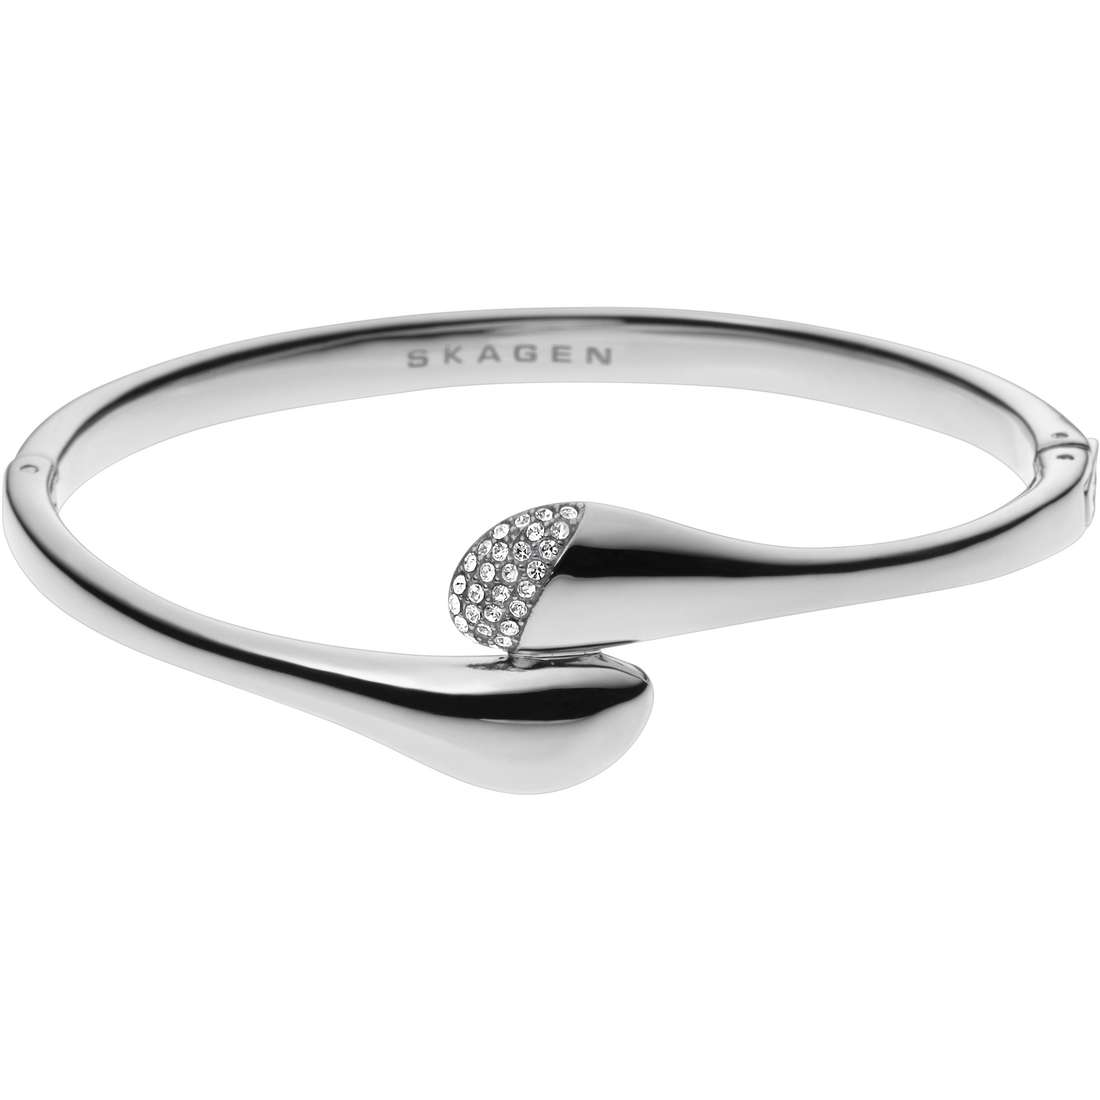 bracelet woman jewellery Skagen Fall 2014 SKJ0414040